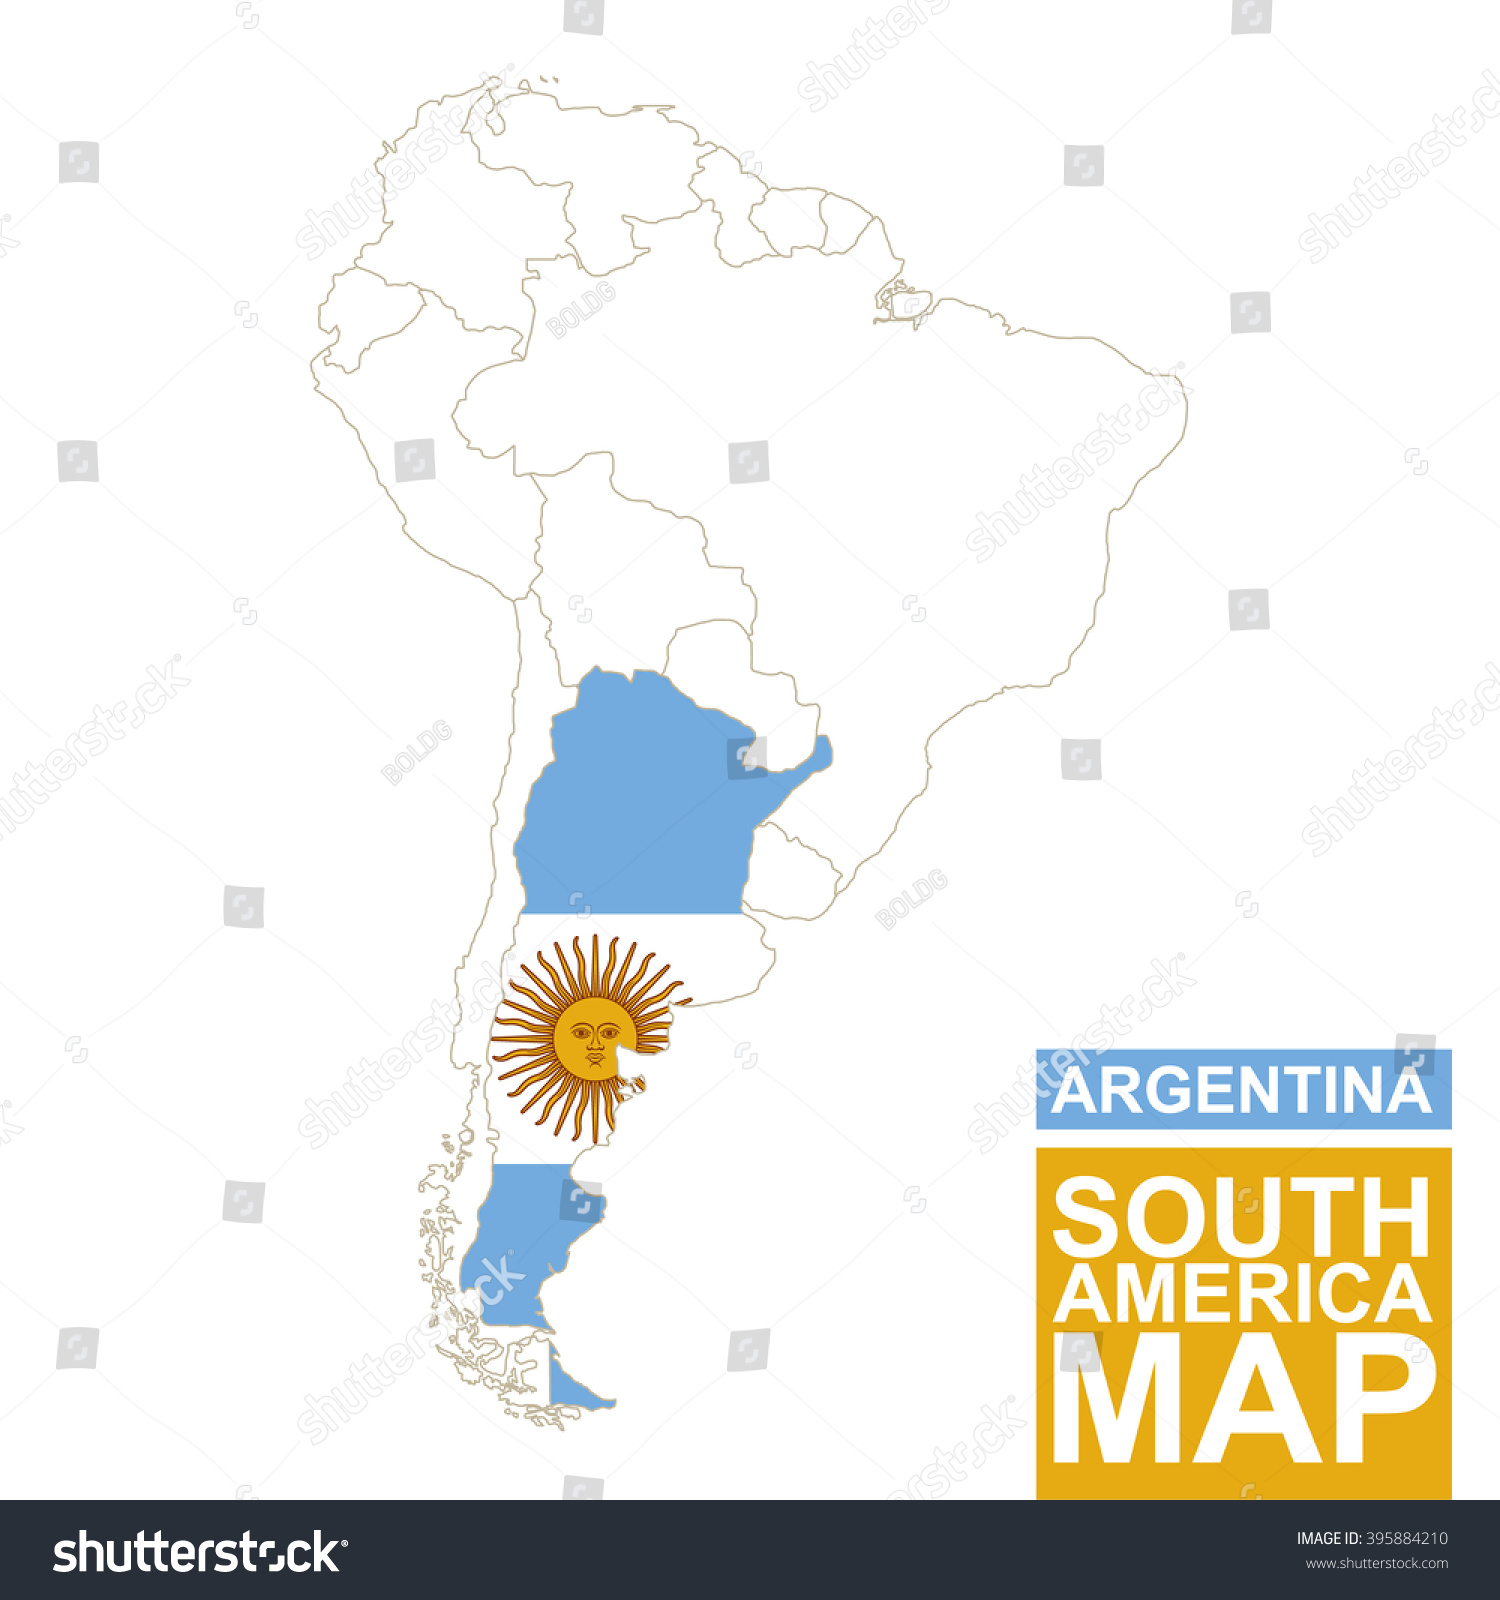 South America Contoured Map Highlighted Argentina Stock Vector - South america argentina map